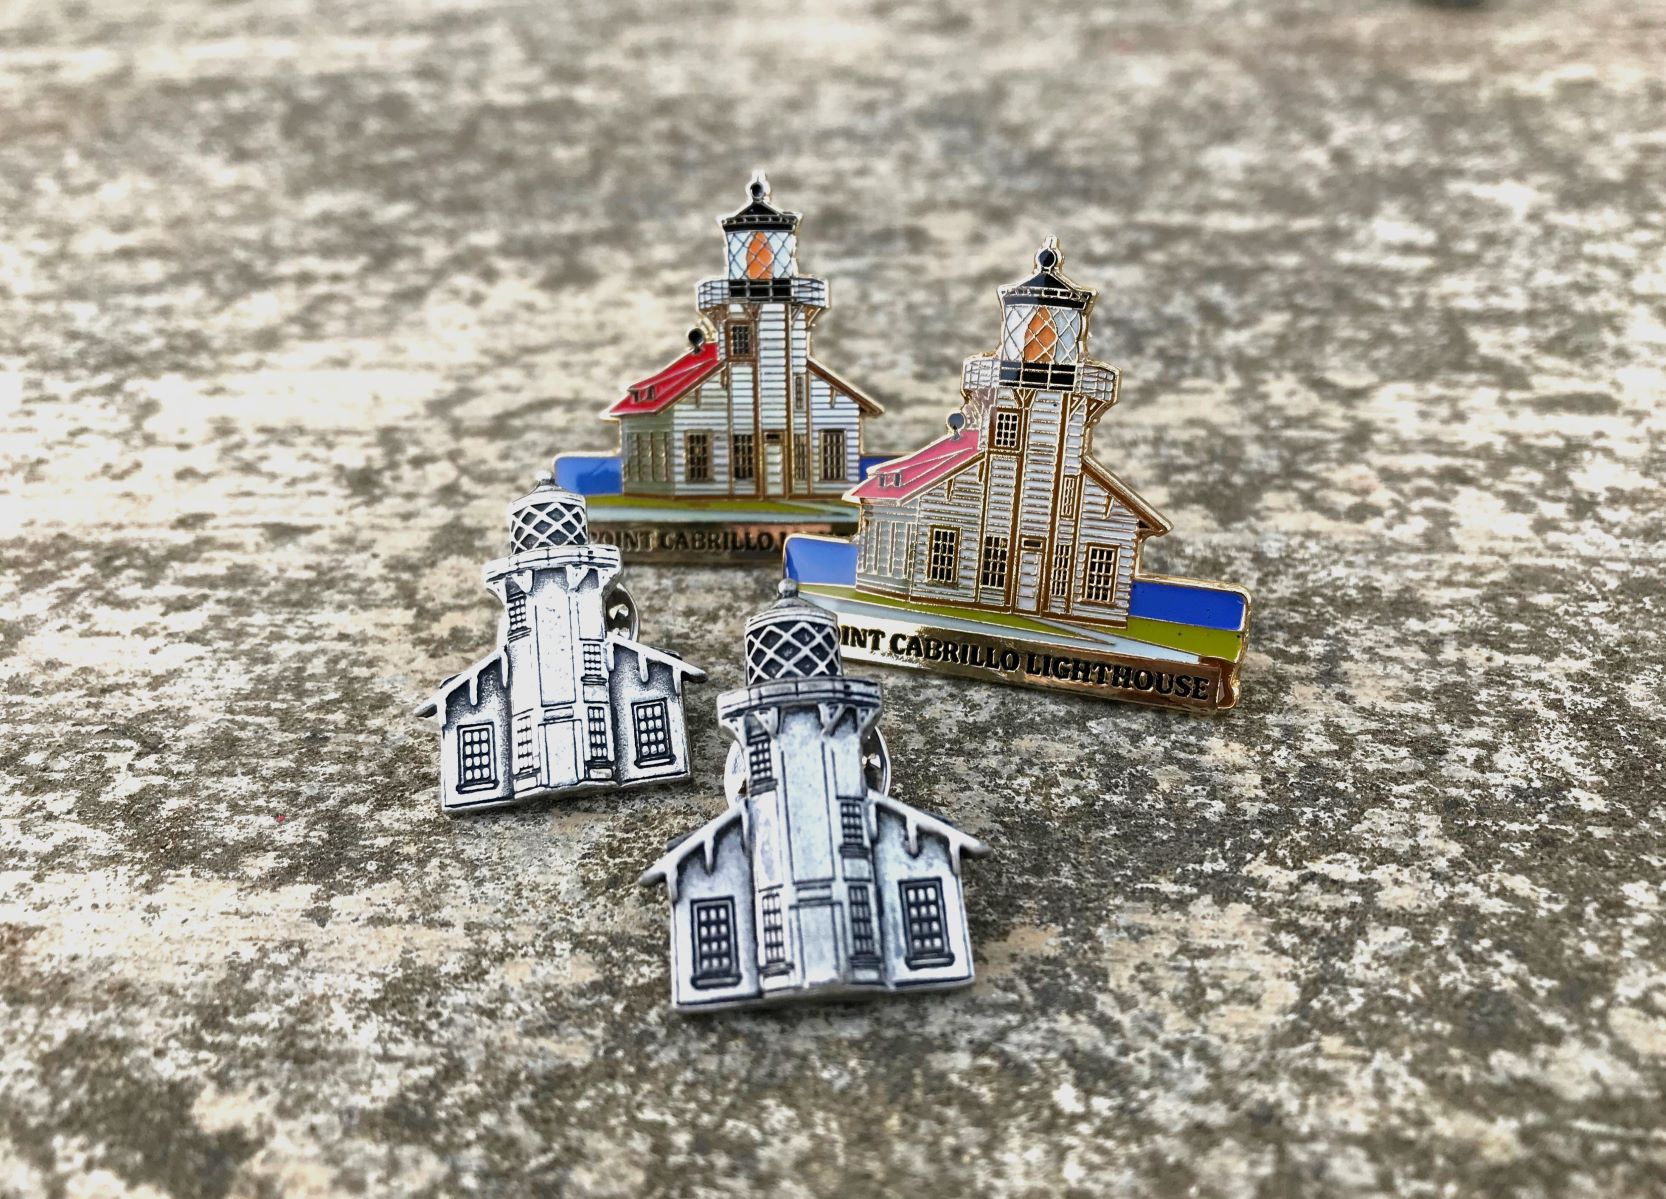 lighthouse-point-cabrillo-lapel-pins